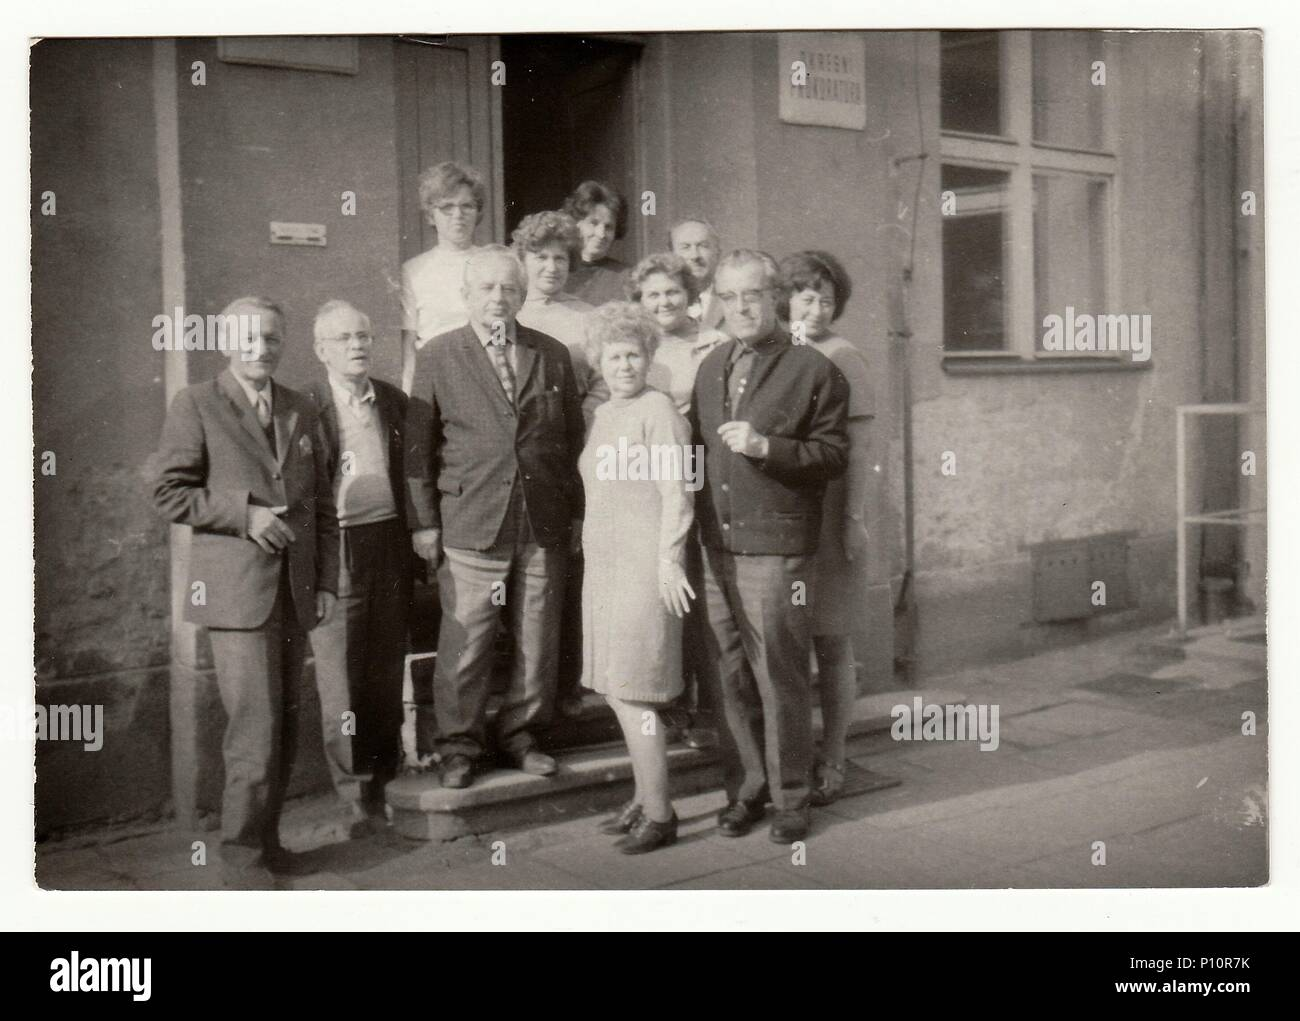 THE CZECHOSLOVAK SOCIALIST REPUBLIC, CIRCA 1970s: Vintage photo shows group of people in front of building. Stock Photo